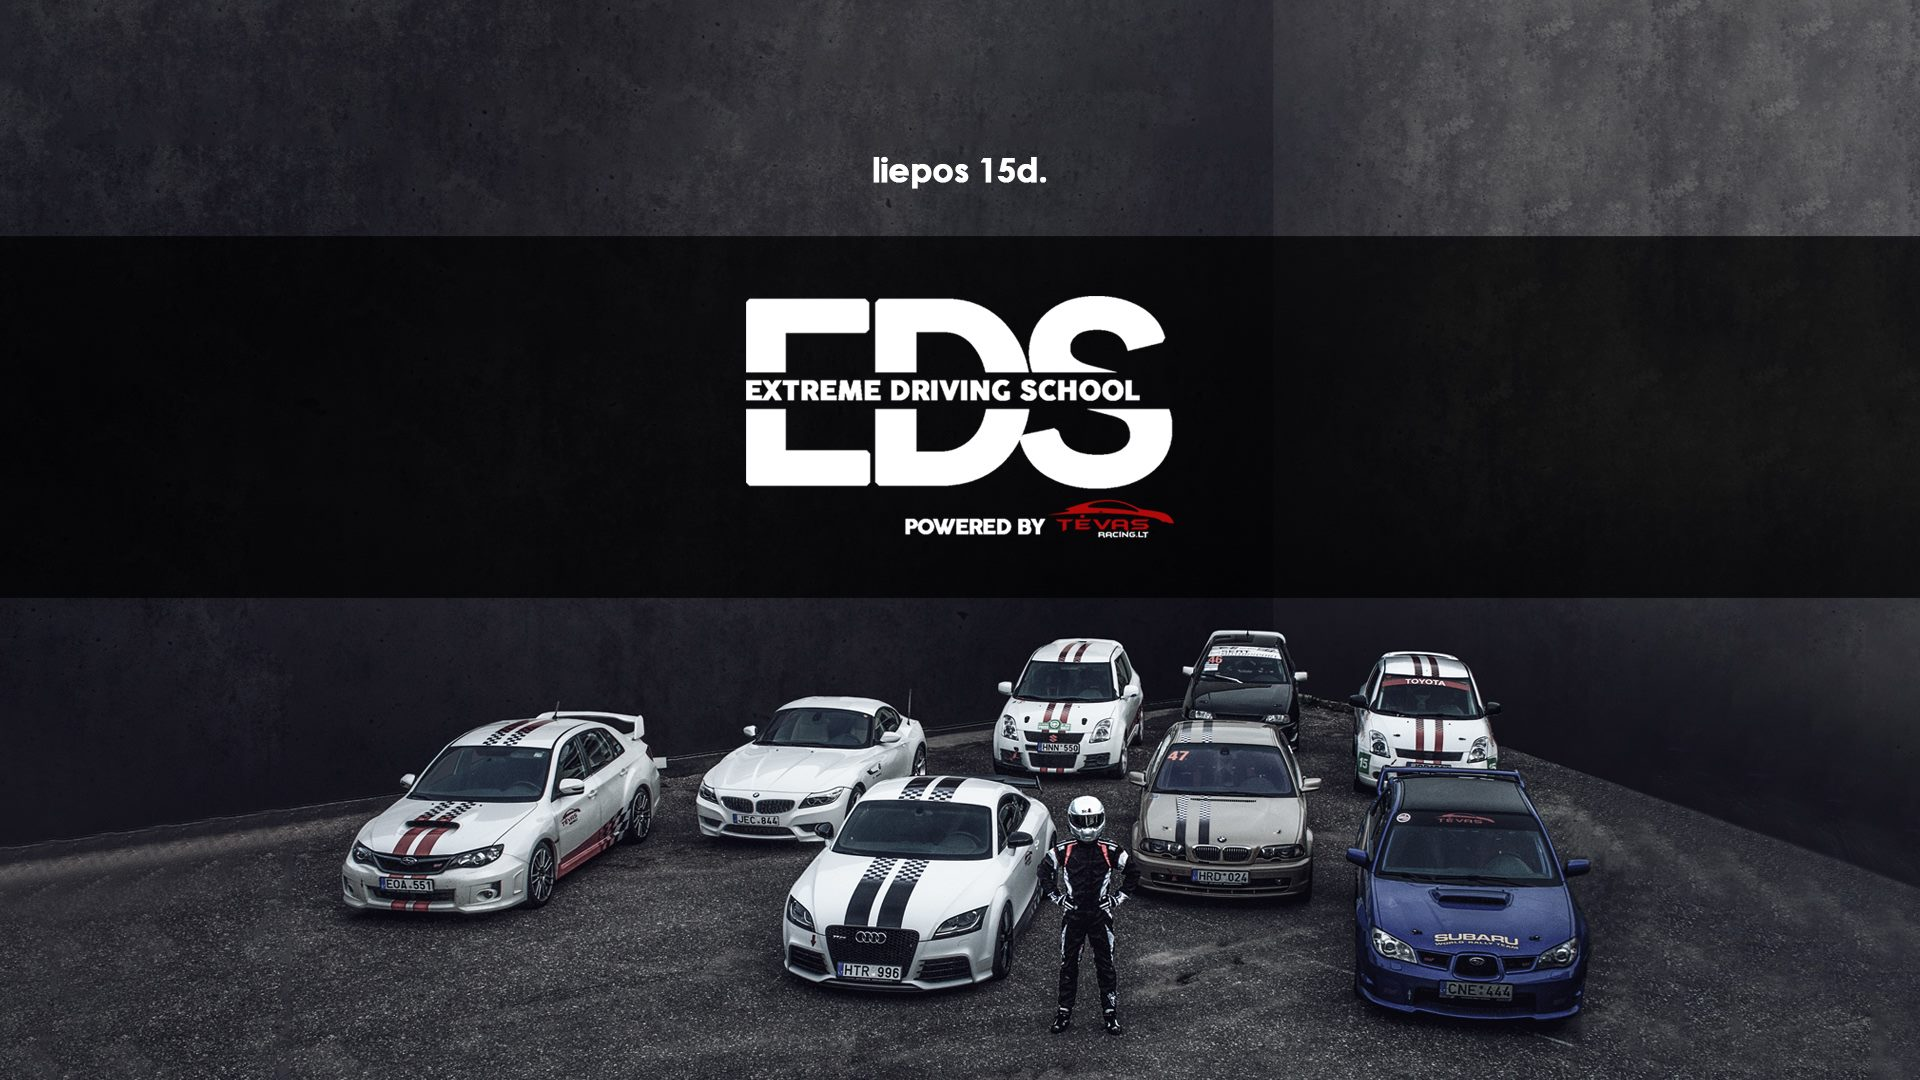 EDS - Extreme Driving School 2018 #1